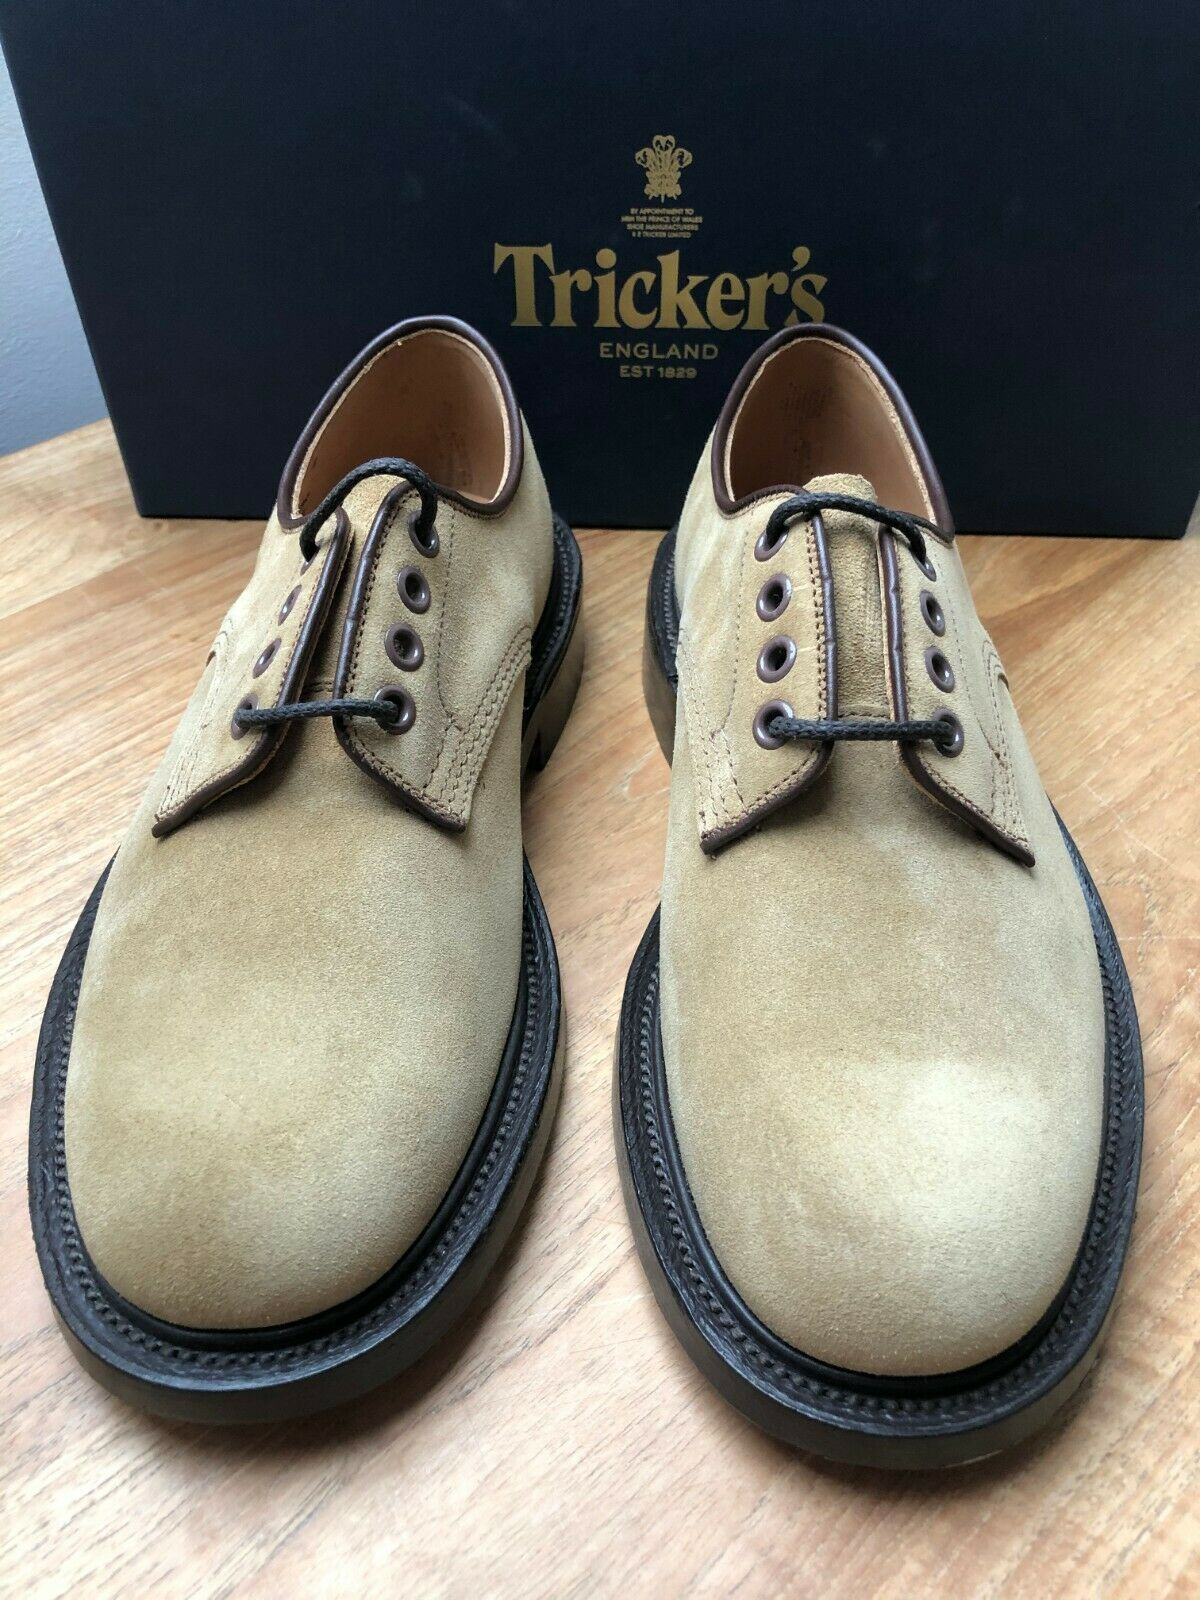 TRICKERS, Repello Goucho Suede Shoes, UK:6, EU:40, RRP ! NEW & BOXED